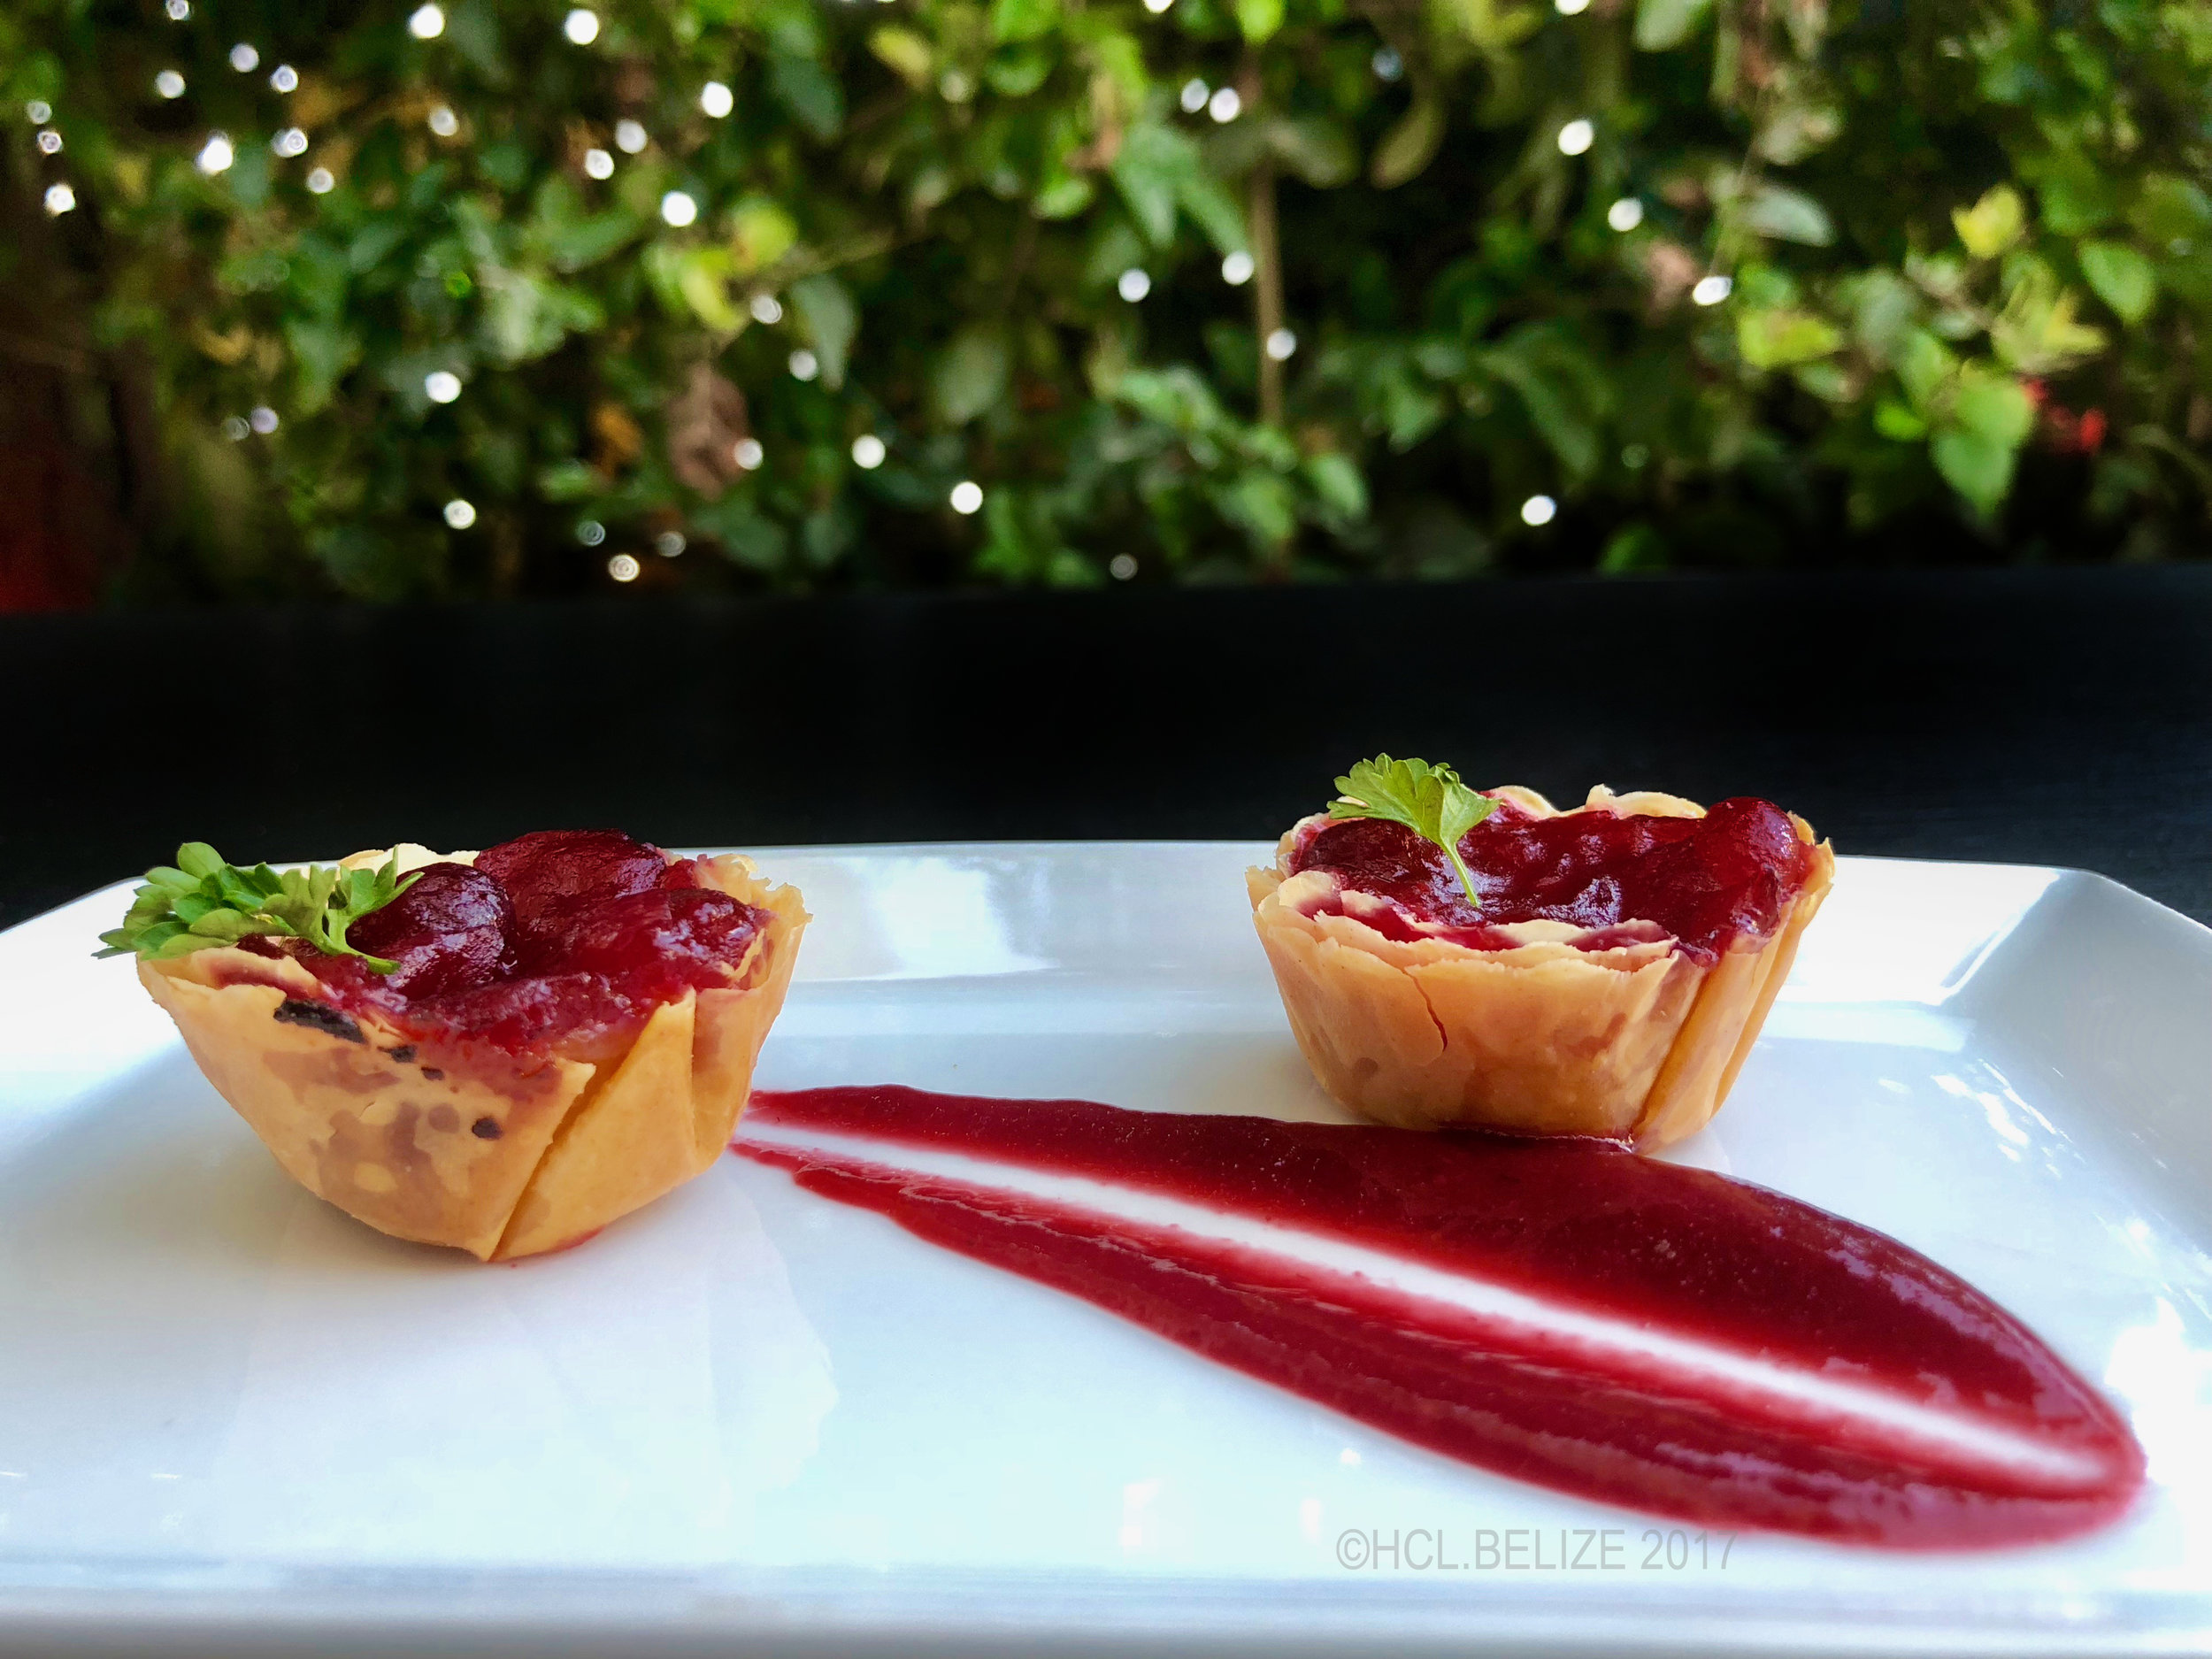 1st Course - Baked Brie with Cranberry - Brie cheese with housemade cranberry jam, baked in a flaky phyllo dough